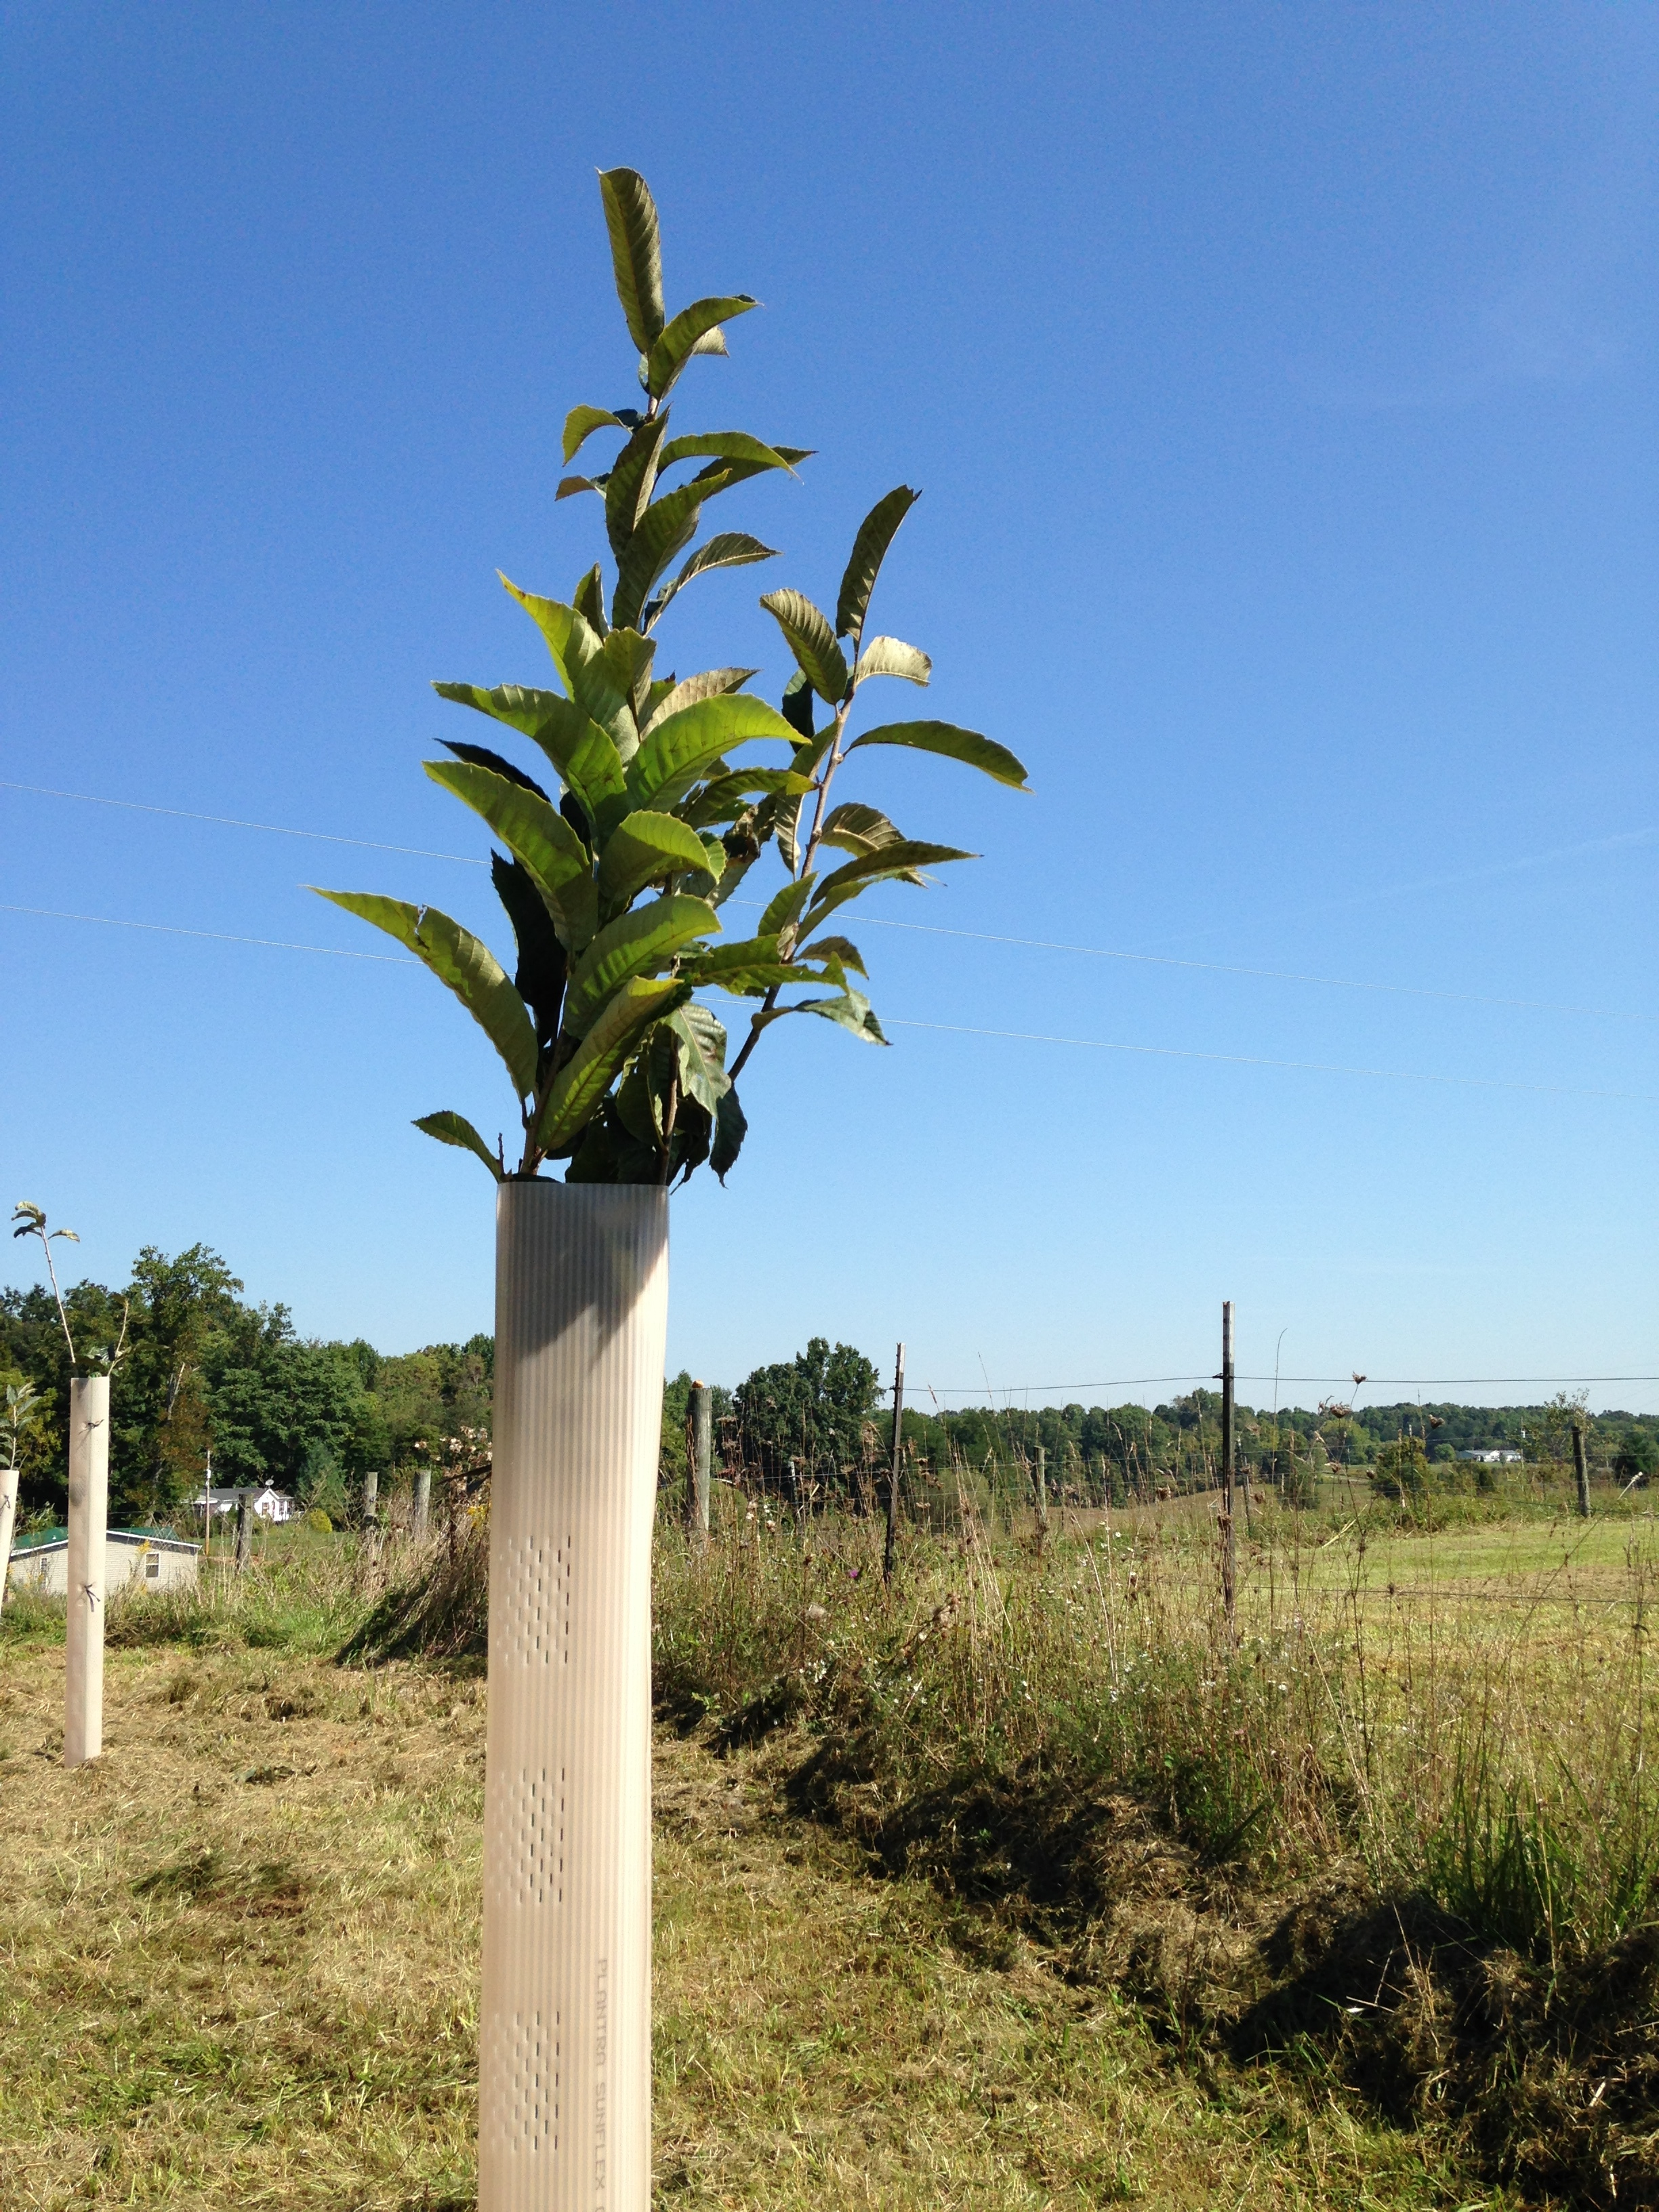 Chestnut Trees in Grow Tubes